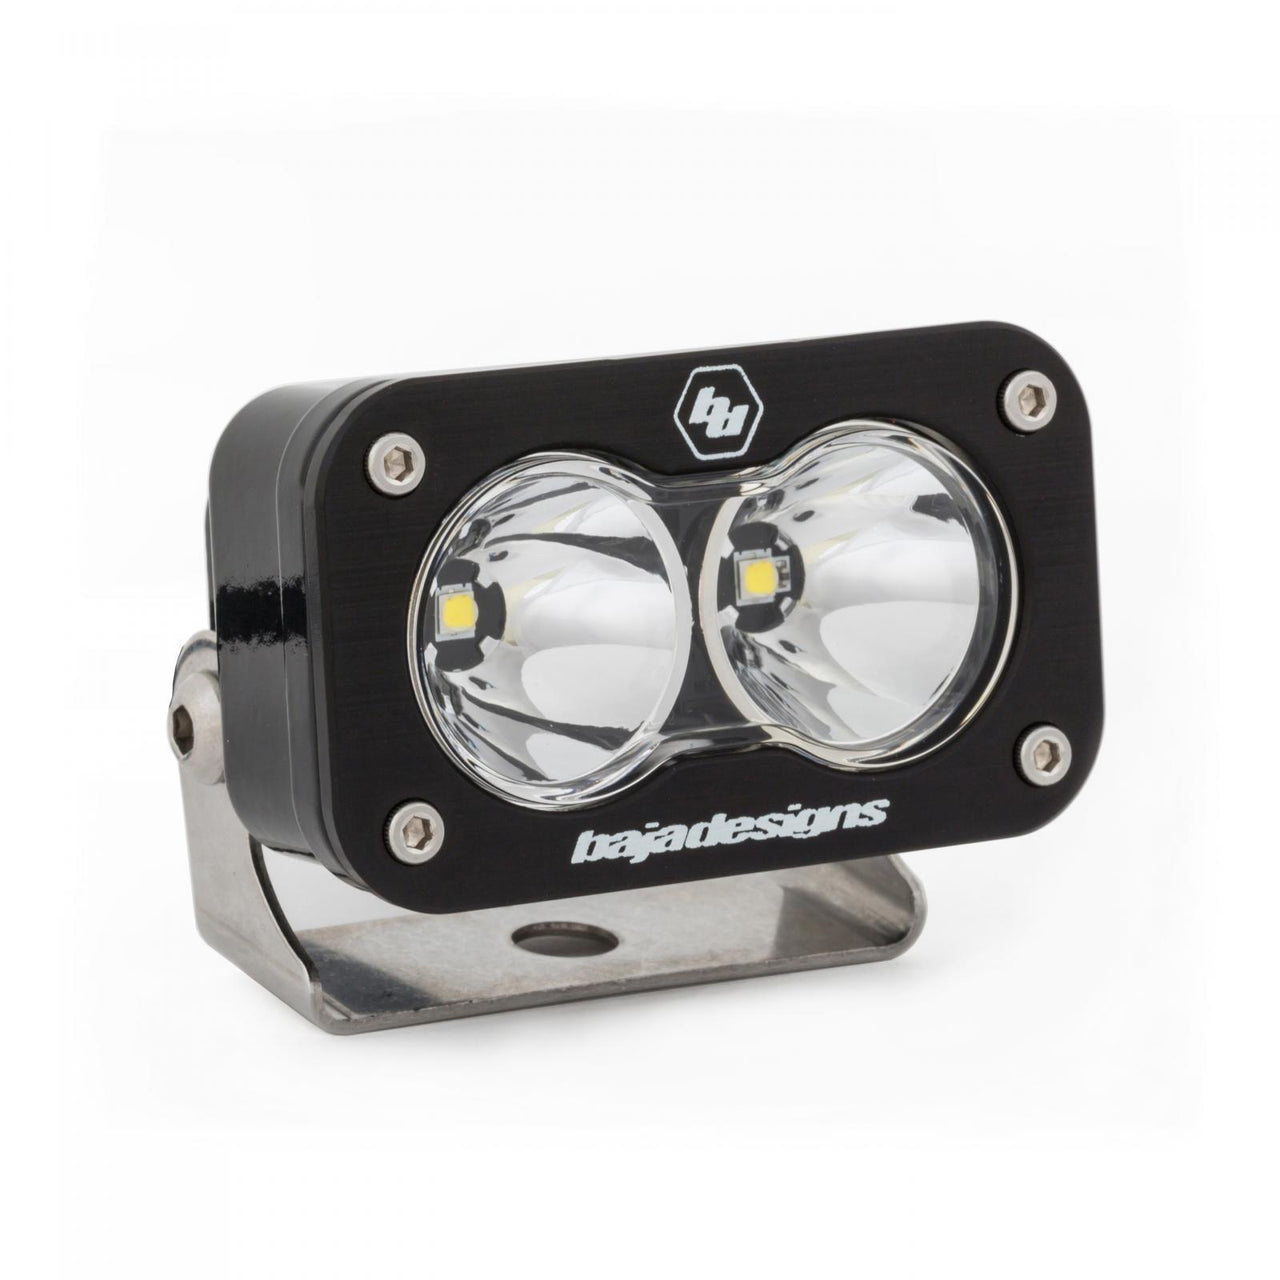 LED Work Light Clear Lens Spot Pattern S2 Pro Baja Designs